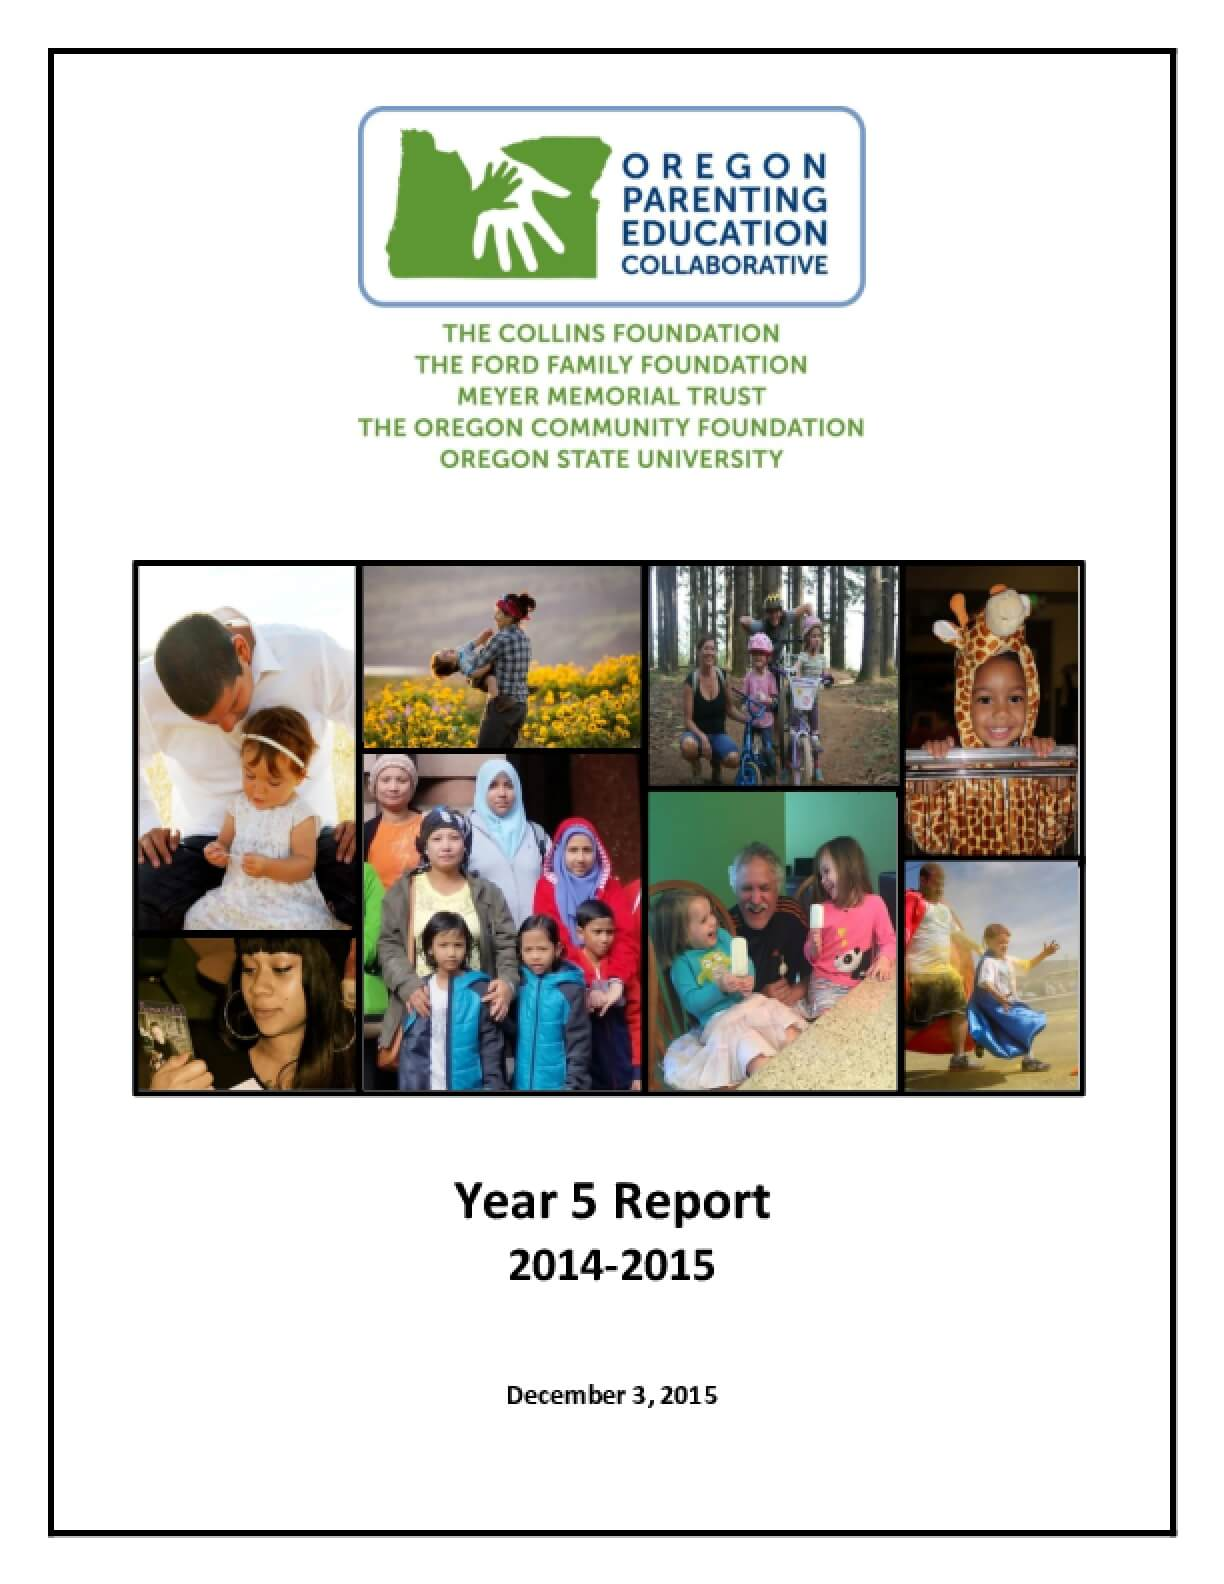 Oregon Parenting Education Collaborative Year 5 Report 2014-2015